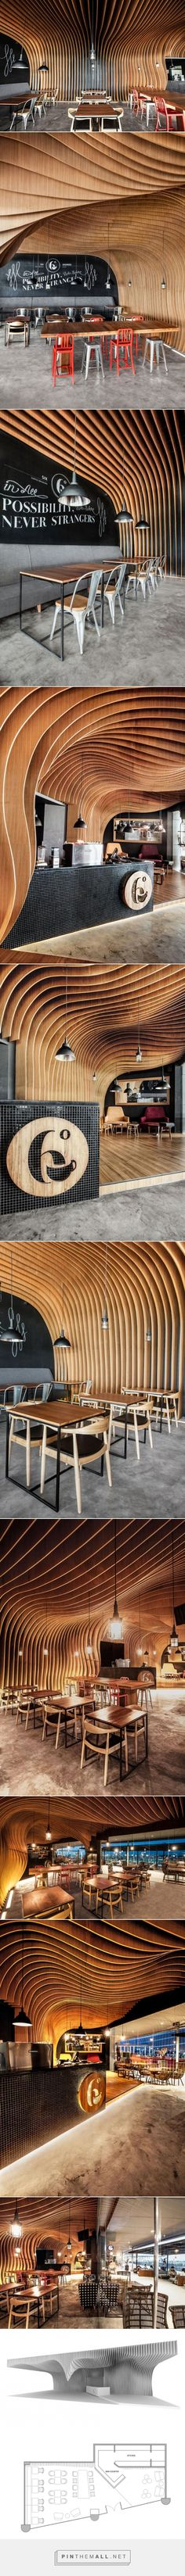 OOZN Design cover Indonesian cafe ceiling with undulating timber slats - created via https://pinthemall.net